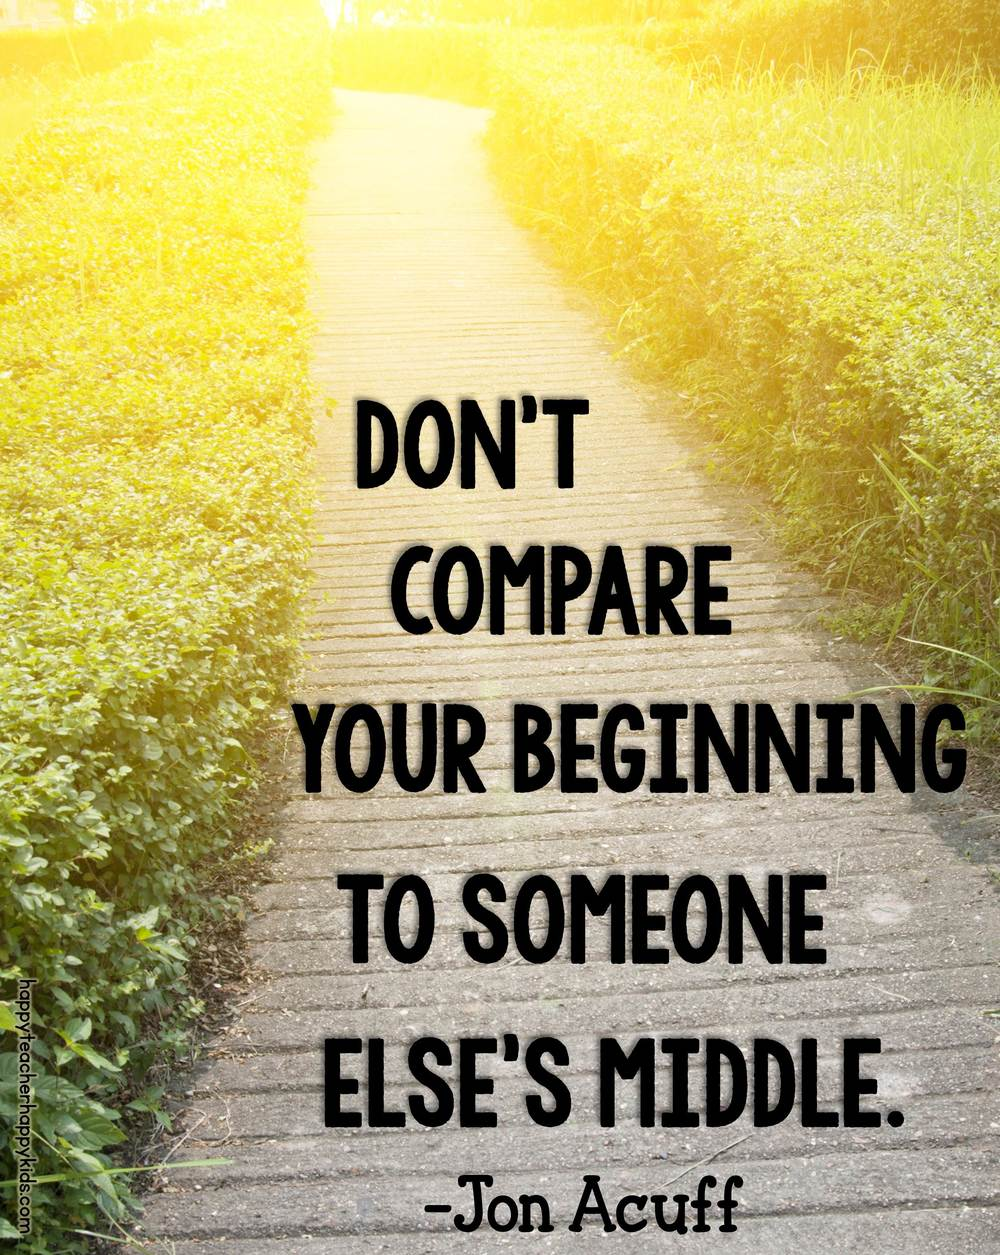 Dont-compare-your-beginning-to-someone-elses-middle.jpg